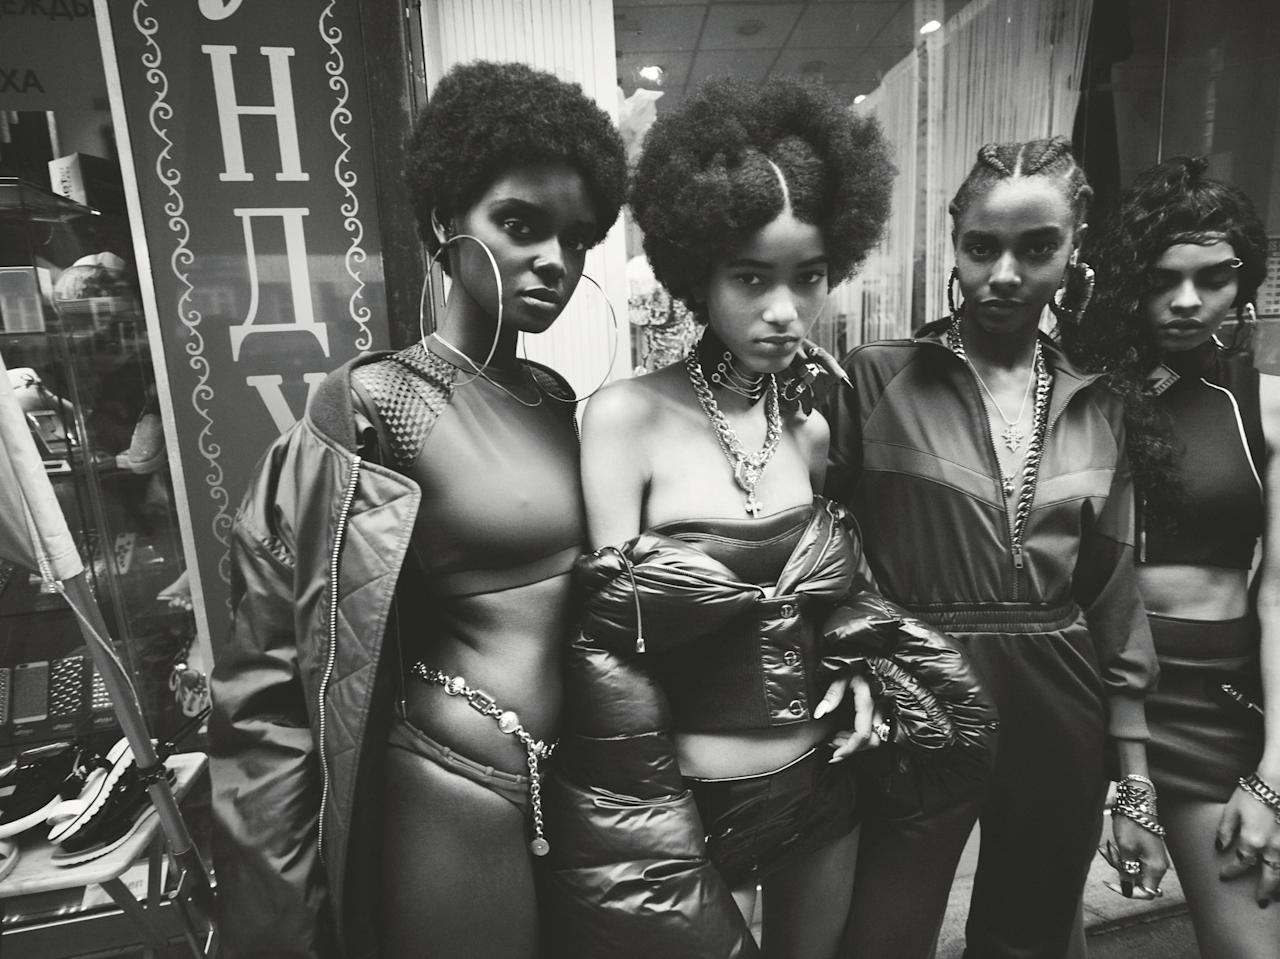 Photograph by Mert and Marcus for W Magazine, September 2017.